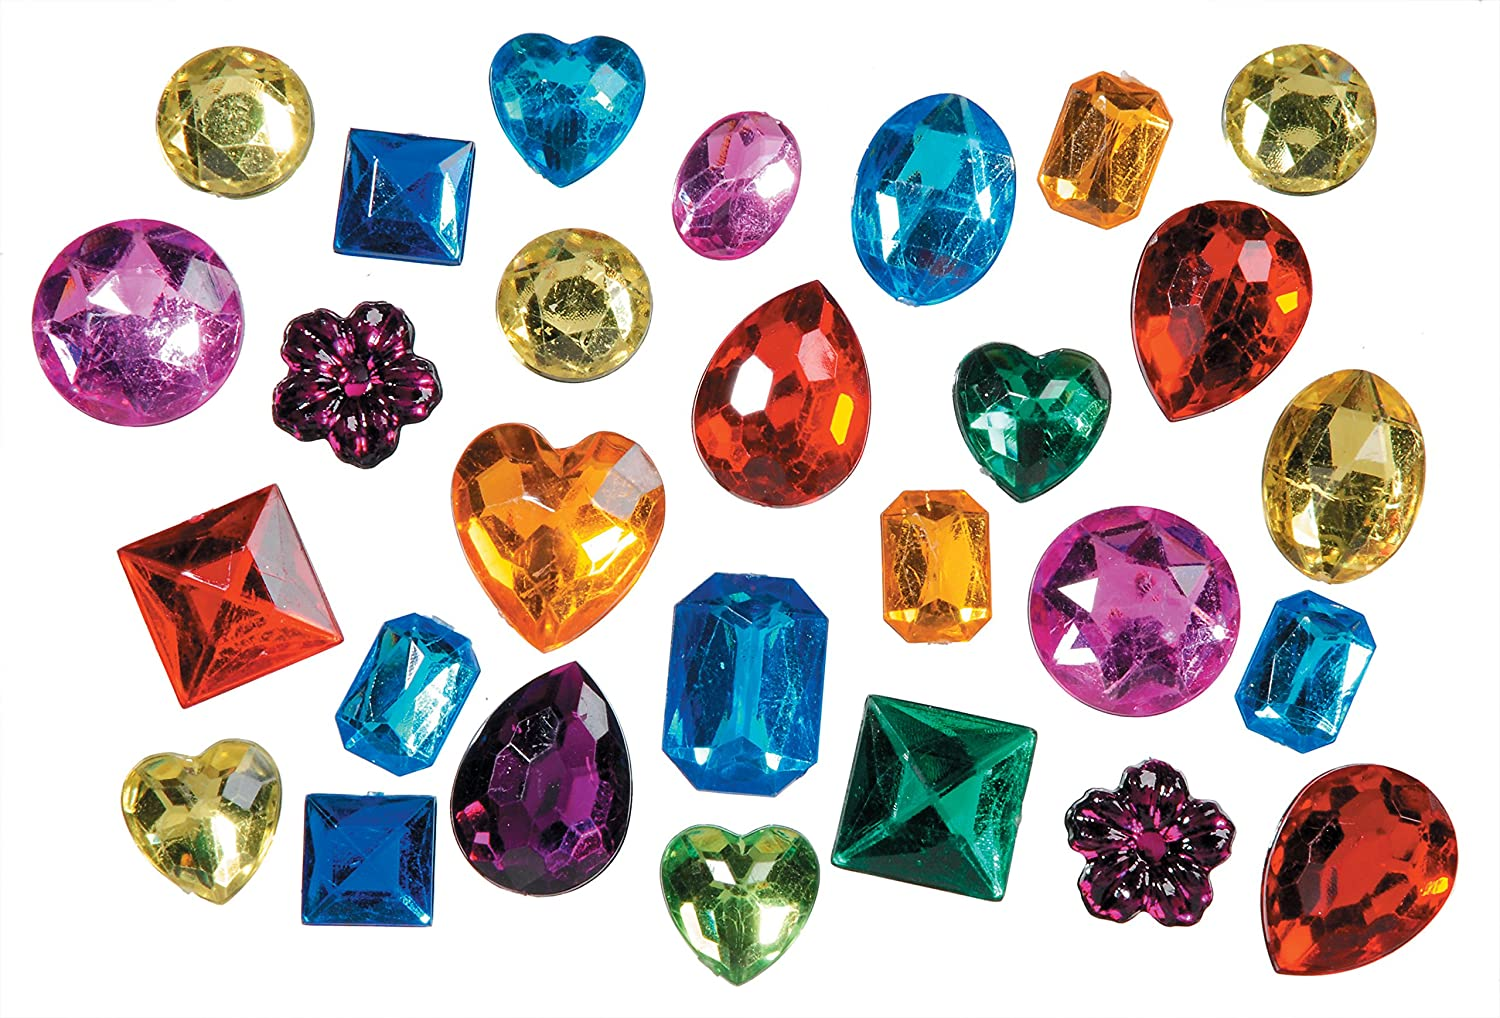 Darice 1075-20C Big Bling Shapes Gem Value Pack Rhinestones, Multicolor